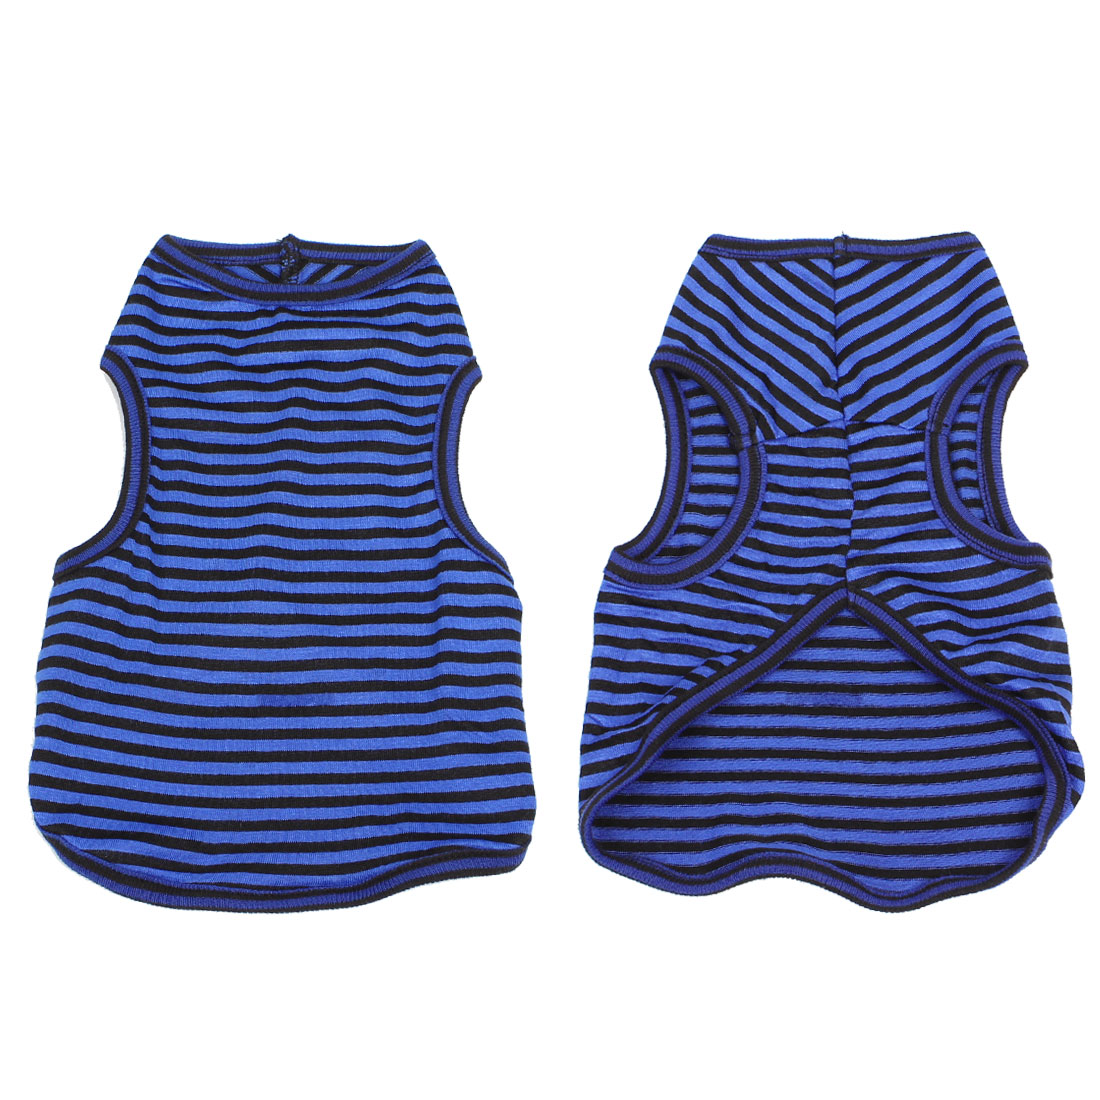 Summer Puppy Pet Yorkie Dog Tank Top Striped Tee Shirt Apparel Blue Black L